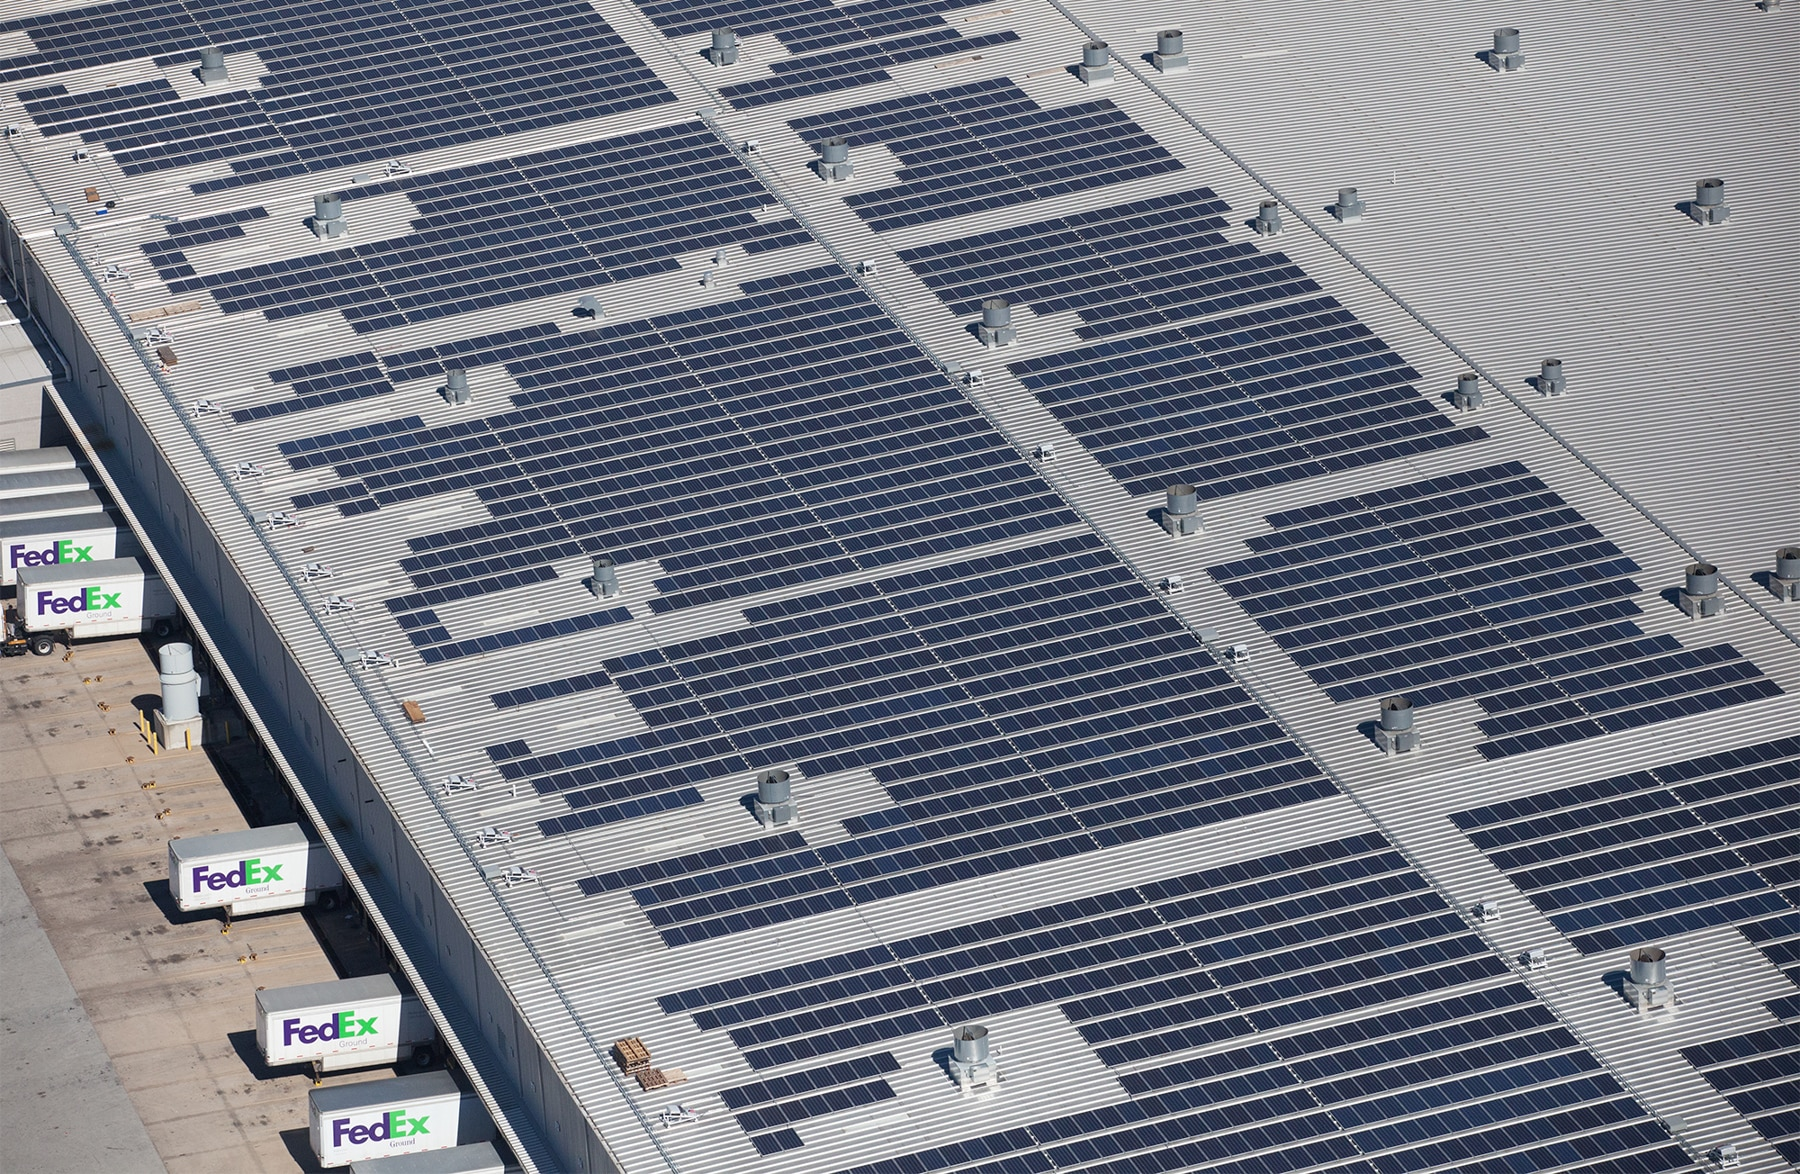 Aerial view of delivery trucks parked beside large building with solar panels covering roof (FedEx)